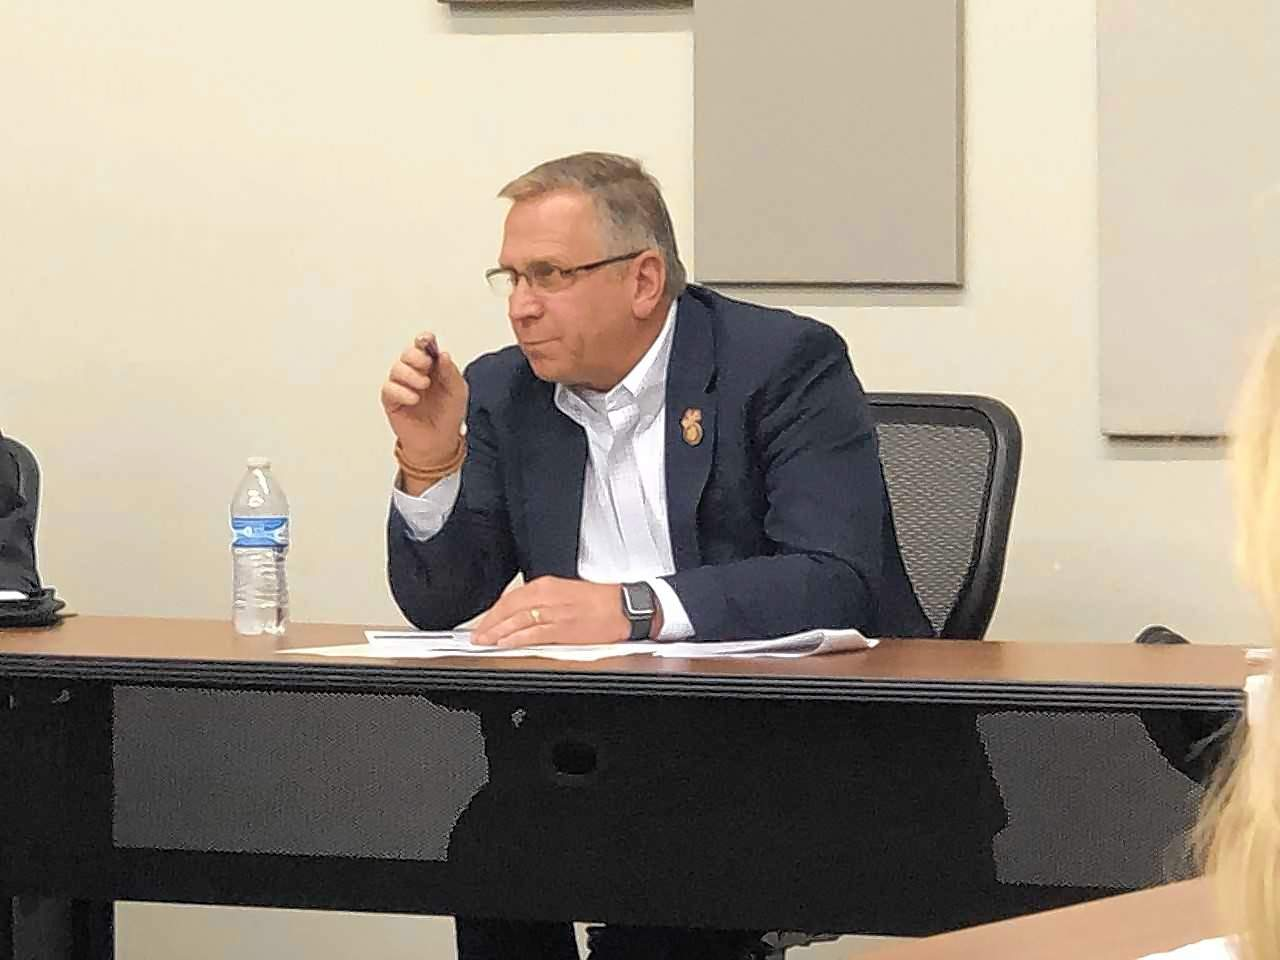 Congressman Mike Bost (R-Murphysboro) listens as IDOT engineer Carrie Nelson explains ongoing infrastructure projects to area leaders during a meeting with the Greater Egypt Regional Planning and Development Commission in Marion on Tuesday.